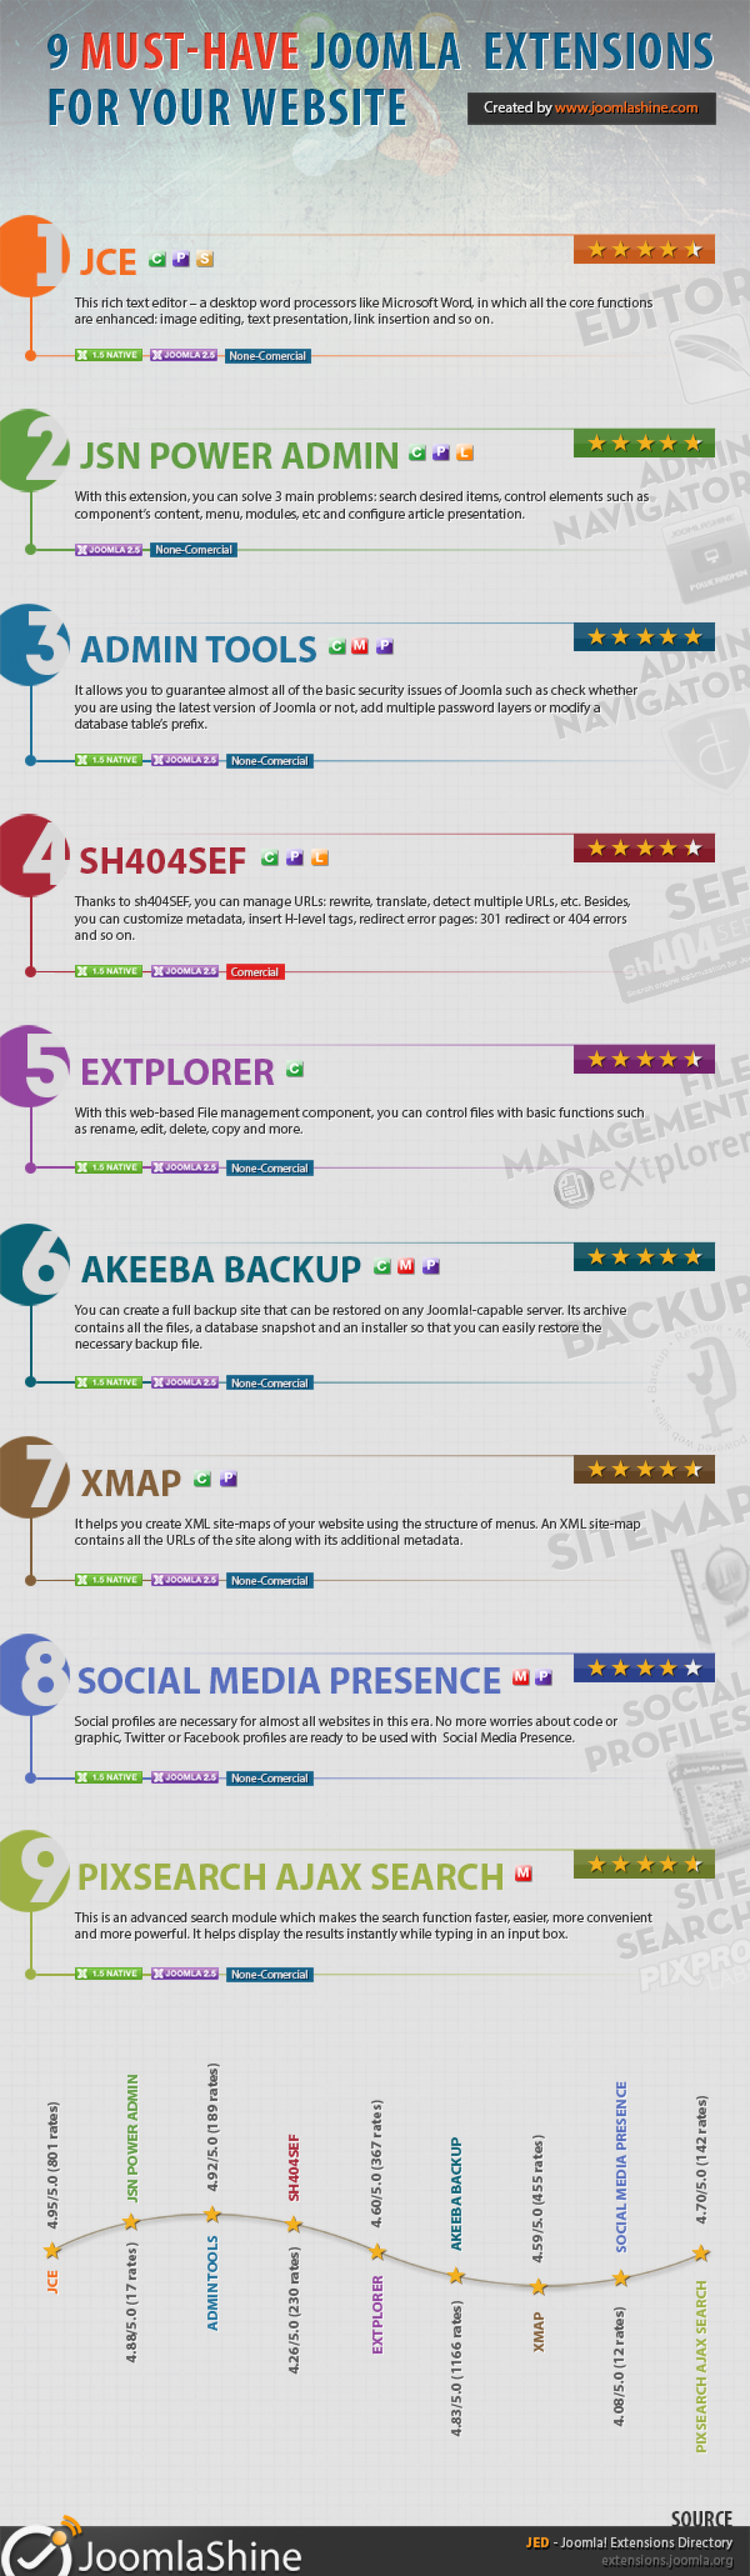 9 must-have Joomla 2.5 extensions for your website Infographic